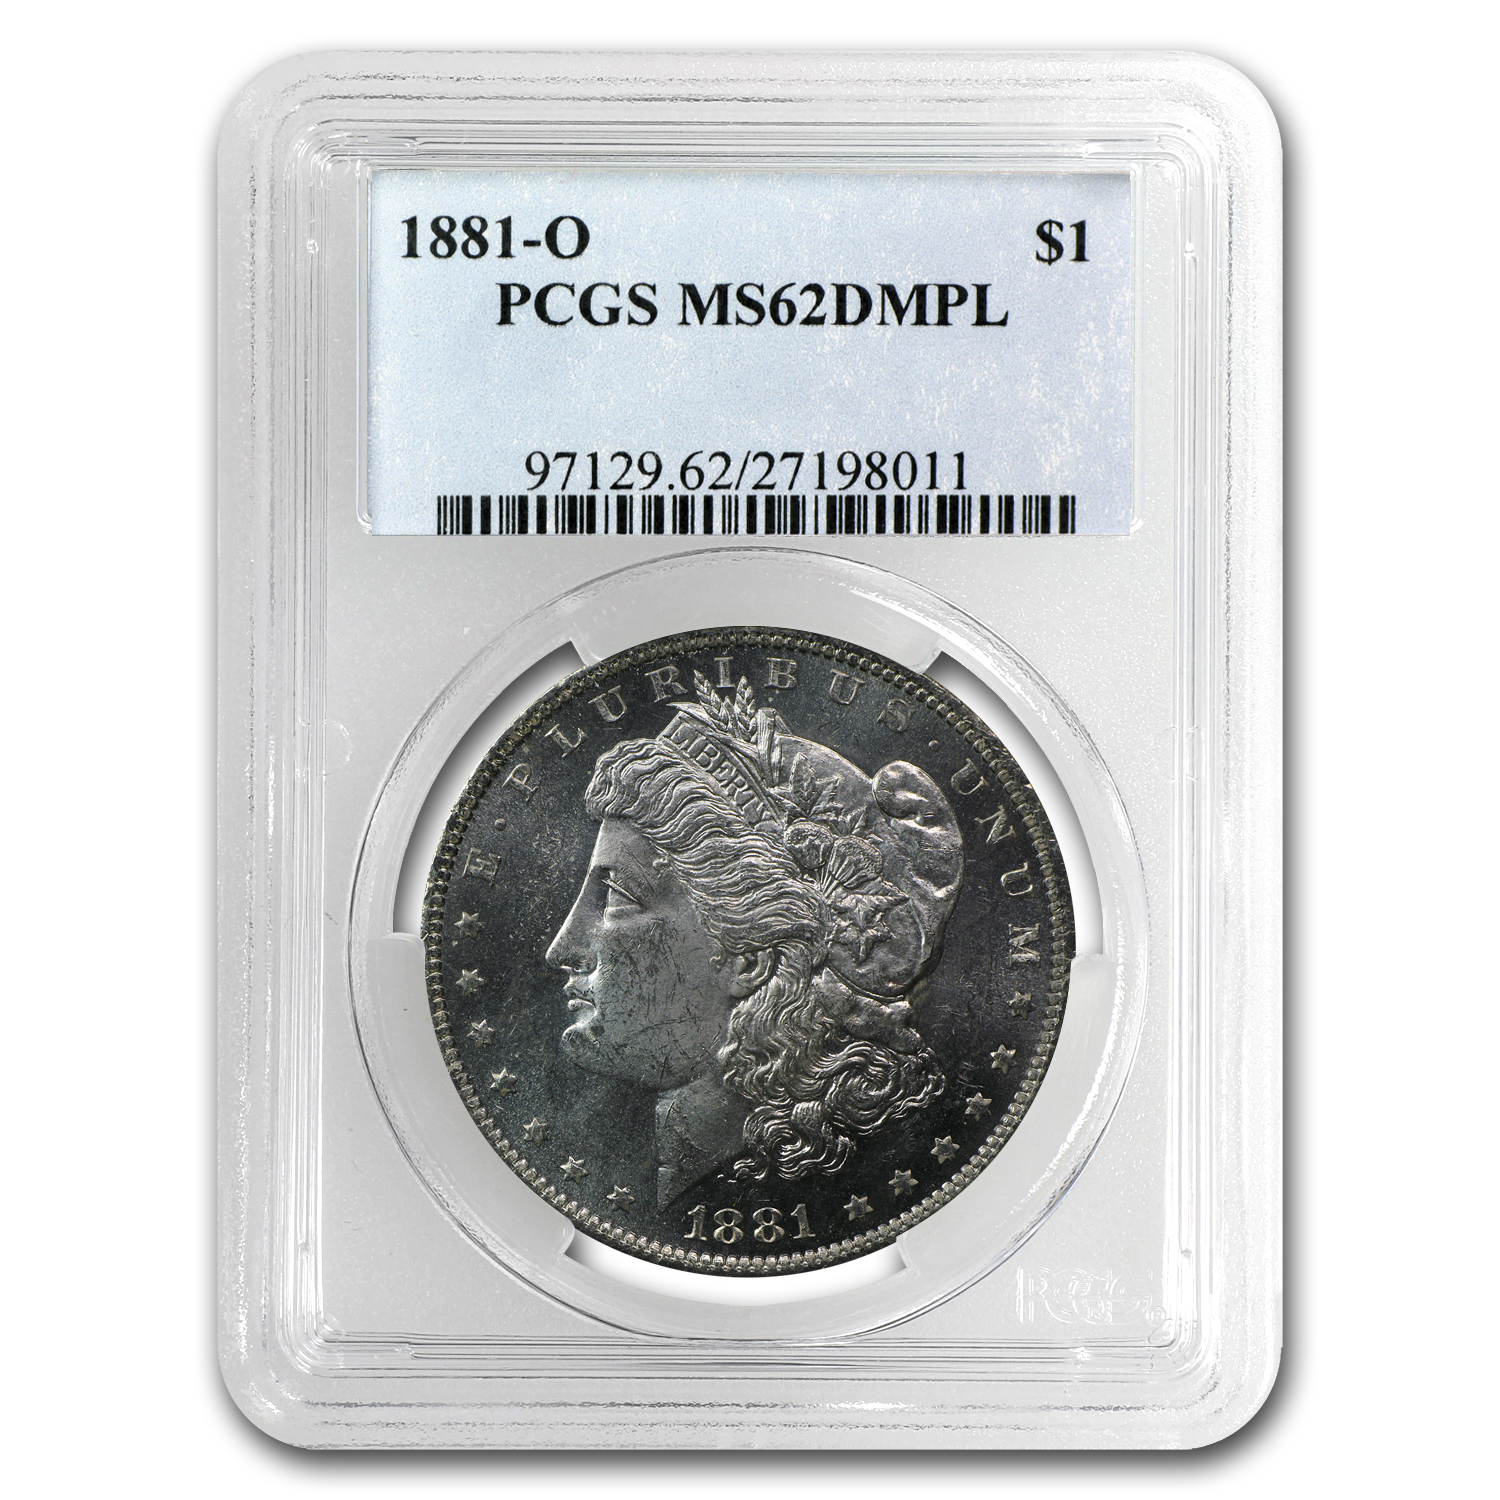 1881-O Morgan Dollar - MS-62 DMPL Deep Mirror Proof Like PCGS